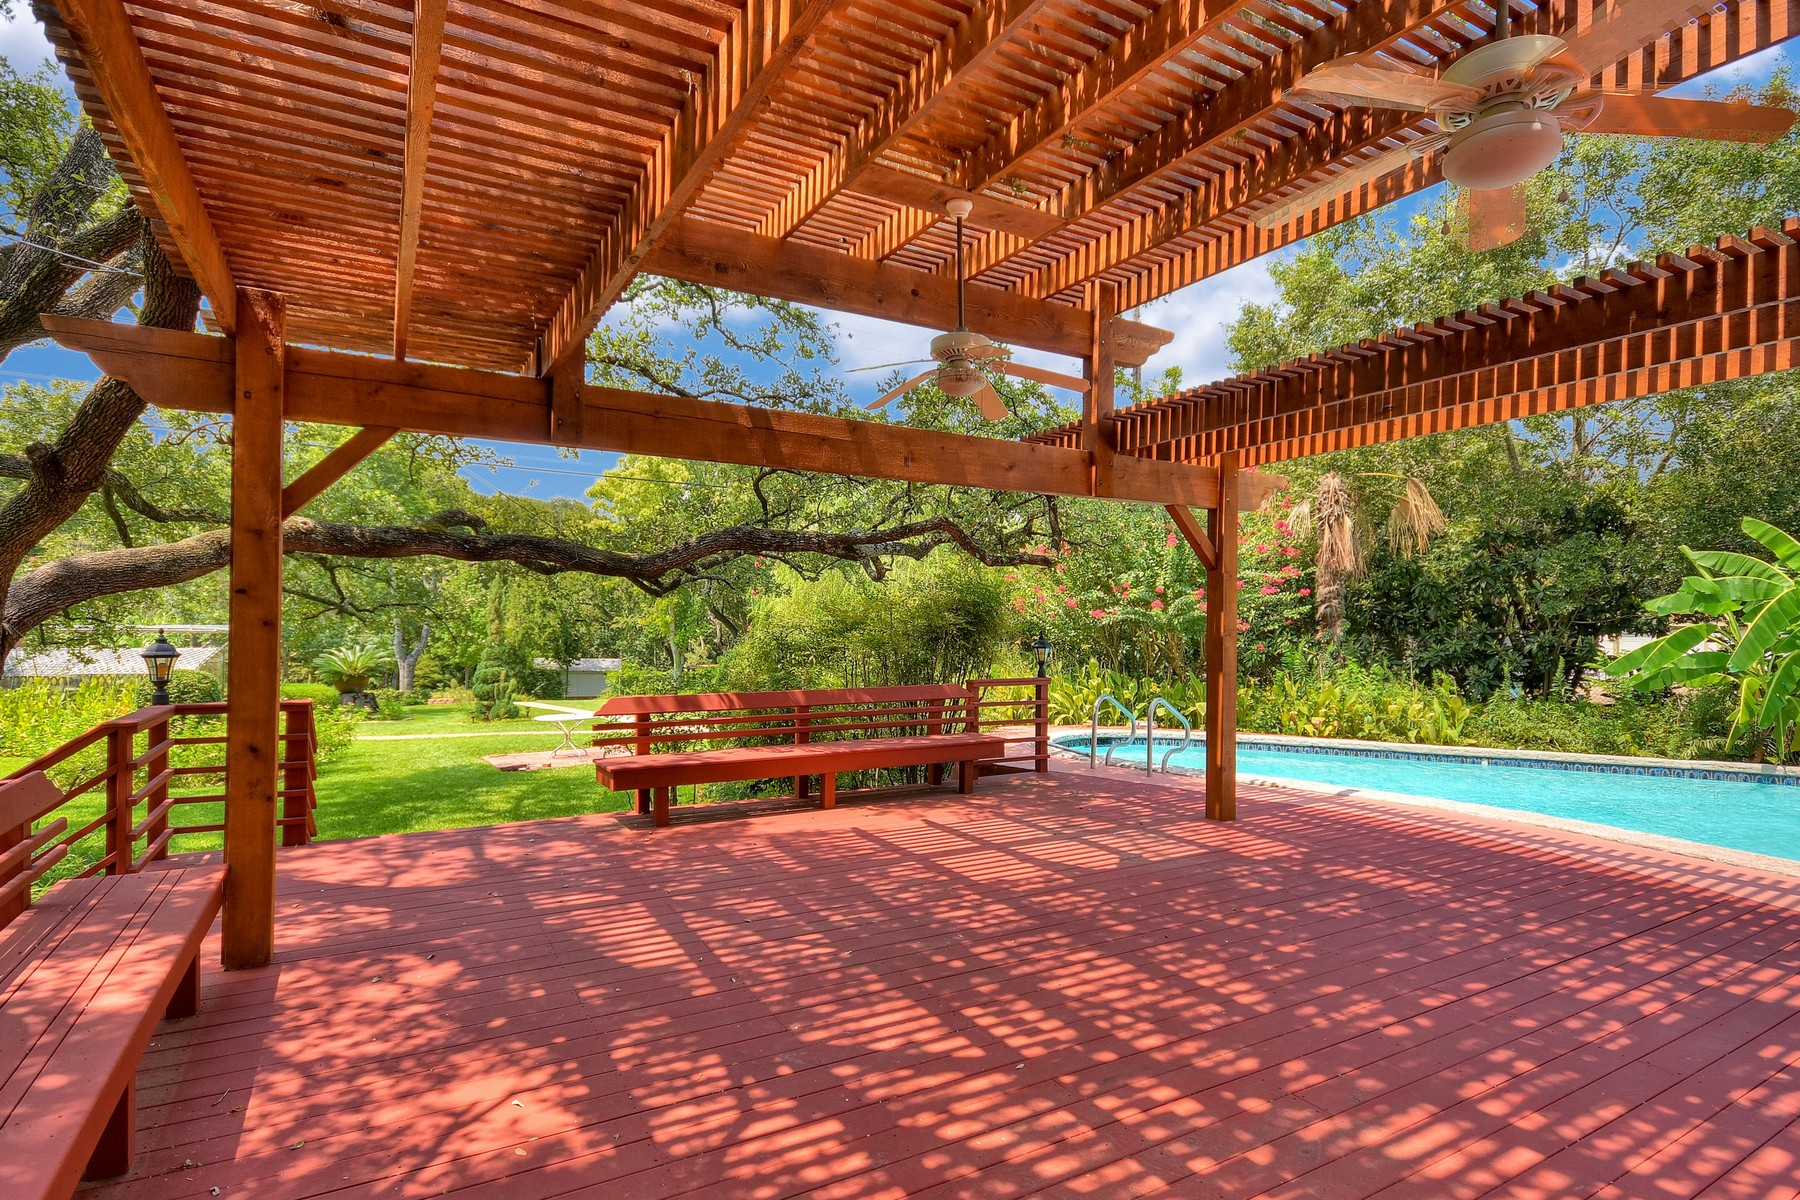 Additional photo for property listing at Enchanting Property Overlooking Shoal Creek 5402 Shoal Creek Blvd Austin, Texas 78756 Estados Unidos